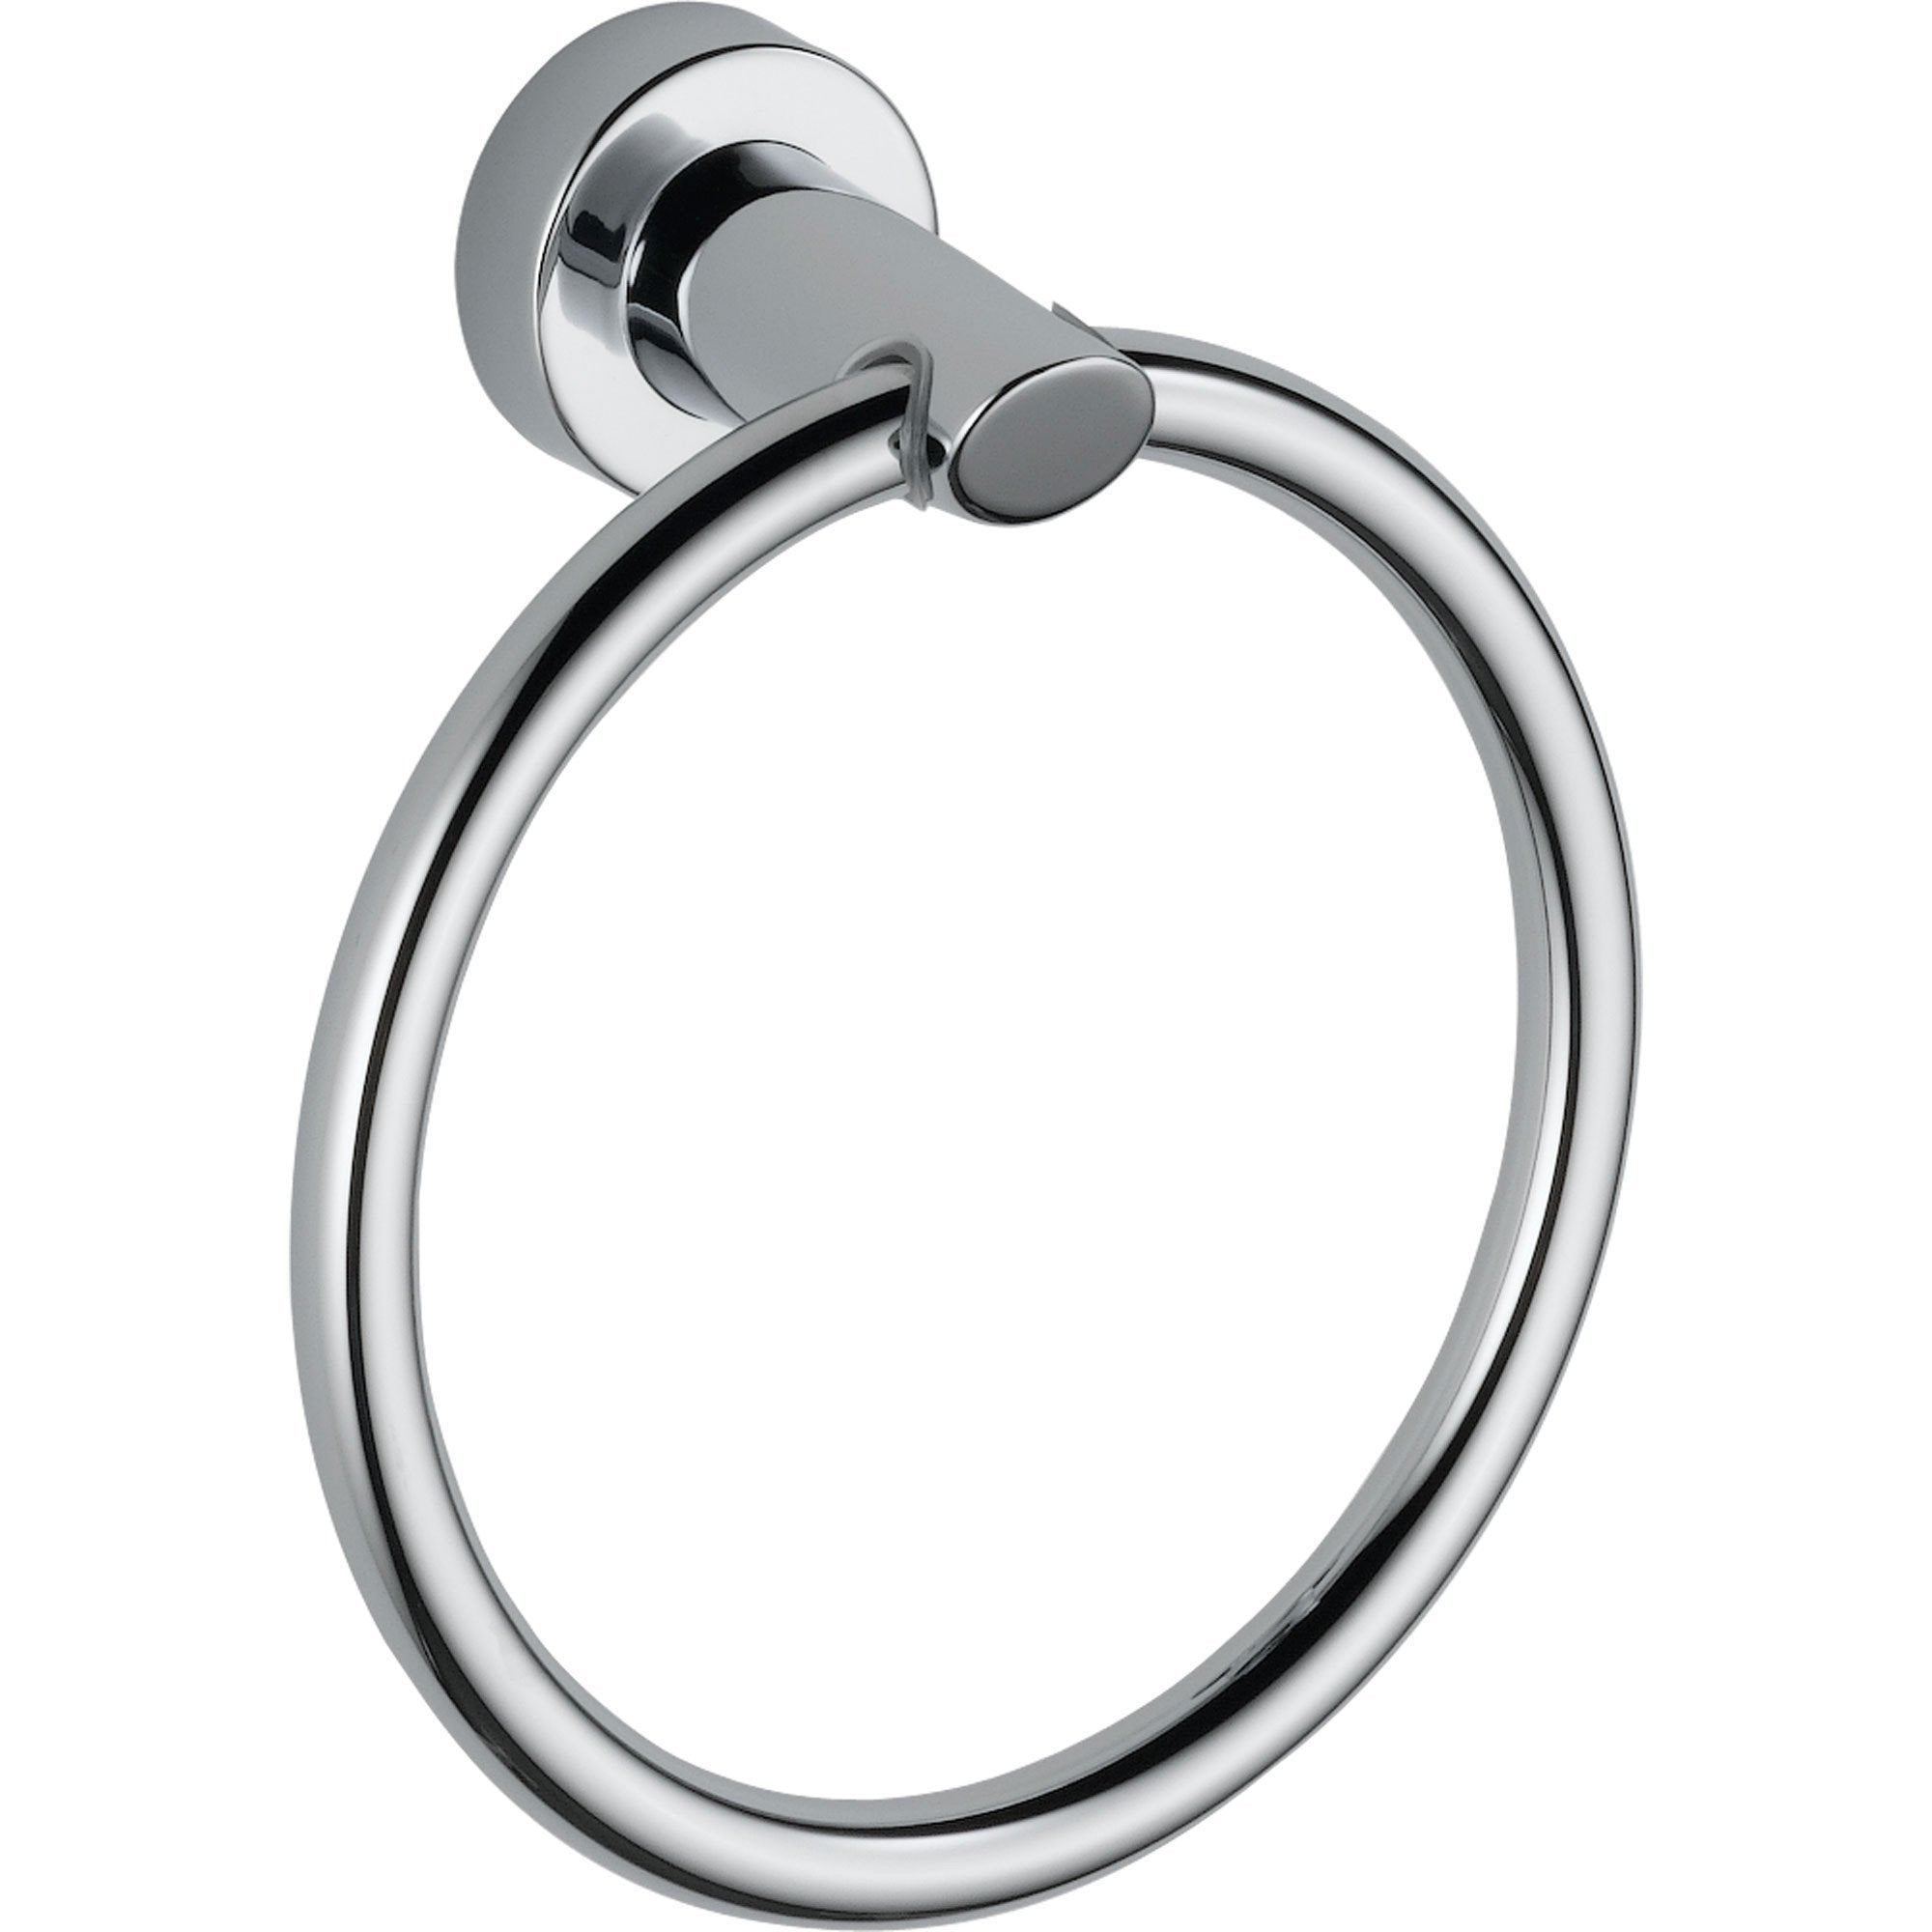 Delta Compel Modern Contemporary Chrome Hand Towel Ring 352997